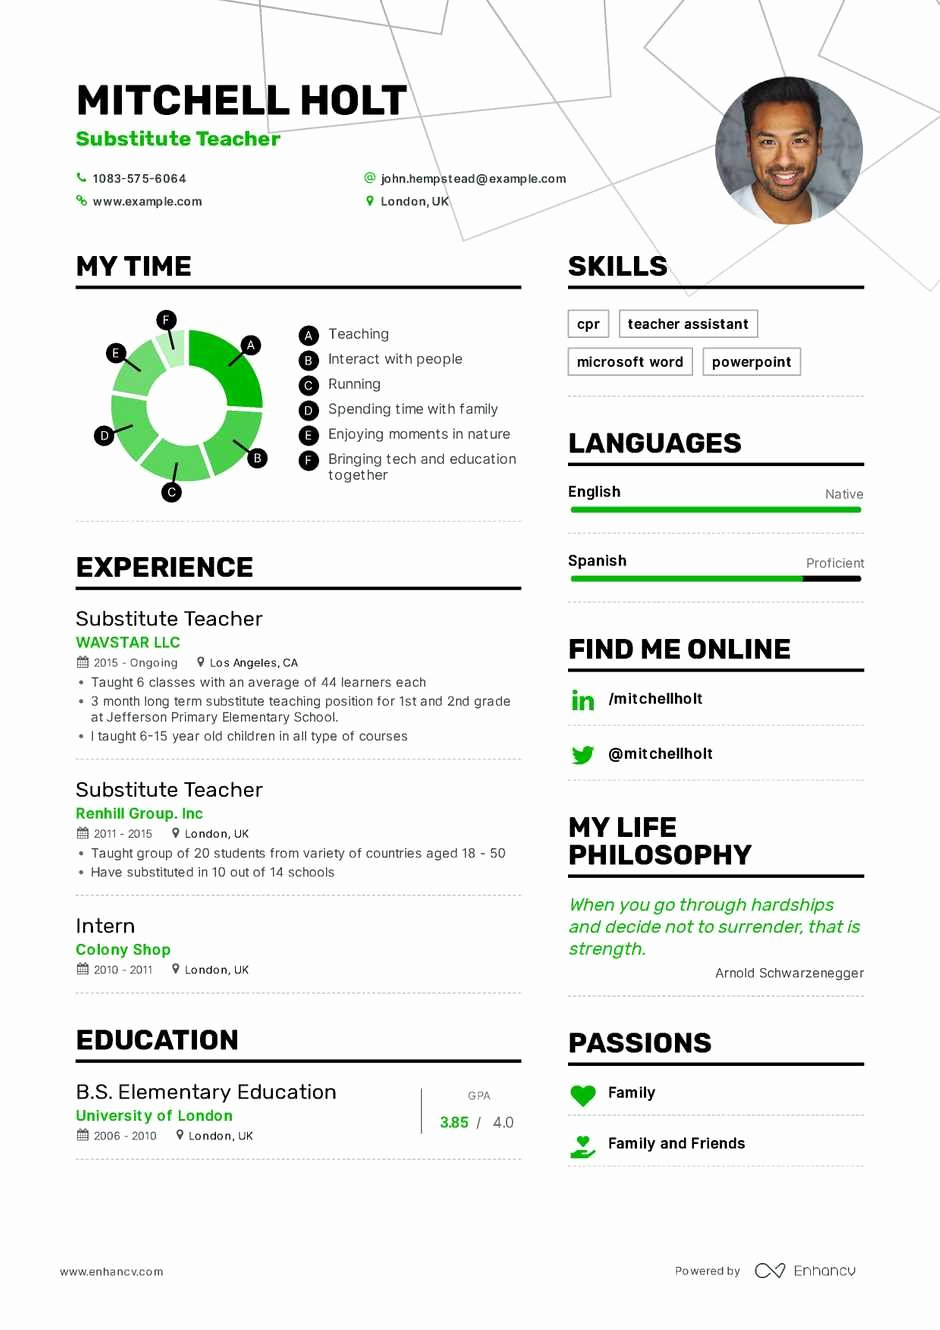 Substitute Teacher Resume Sample Fresh Content Marketing Resume Example and Guide for 2019